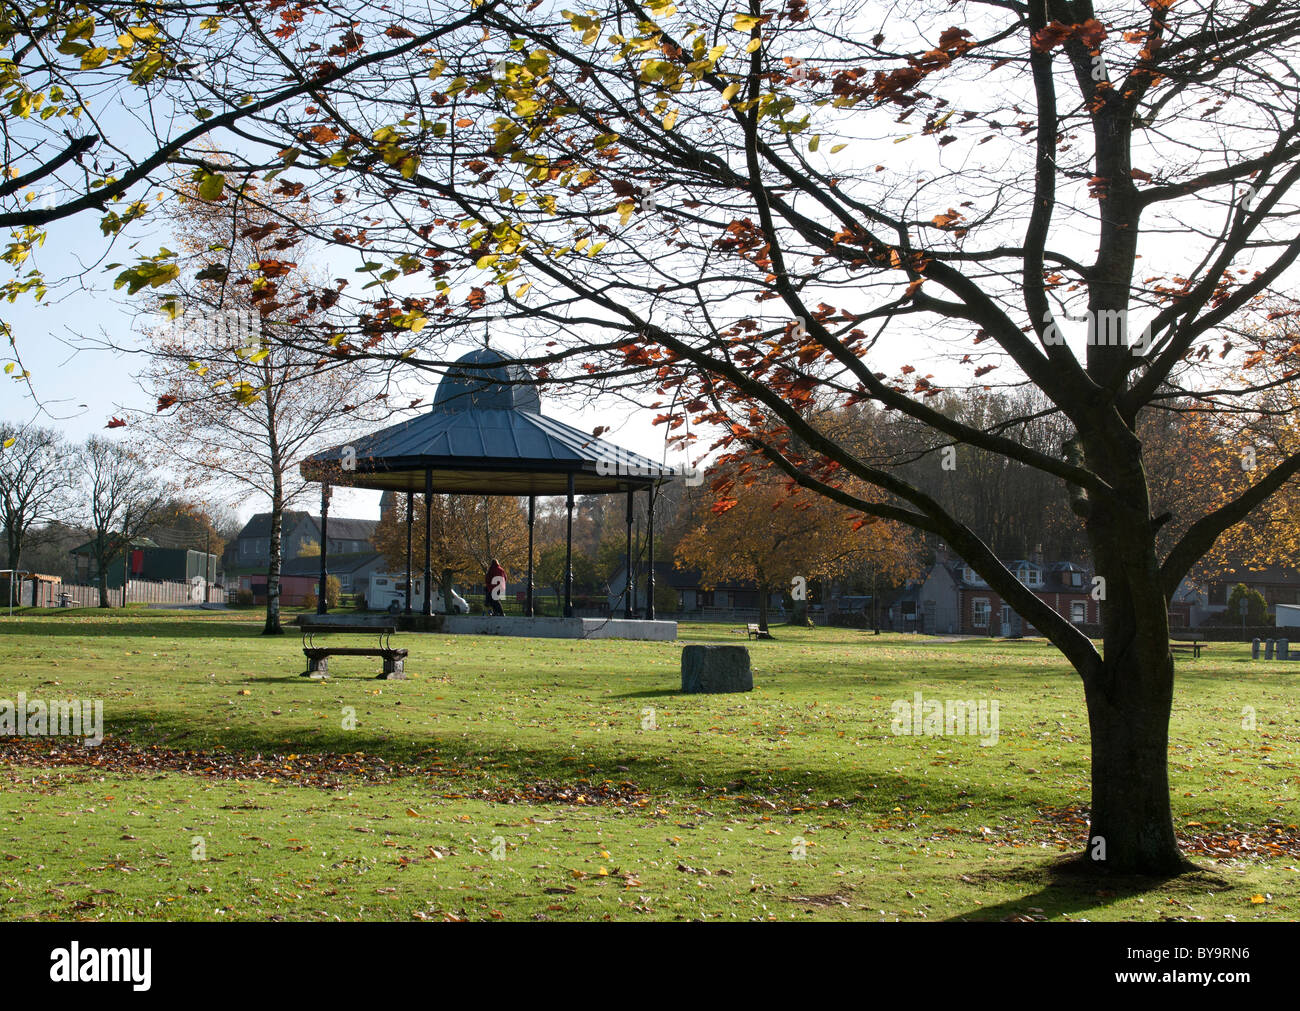 Dalbeattie Park and bandstand, kirkcudbrightshire - Stock Image